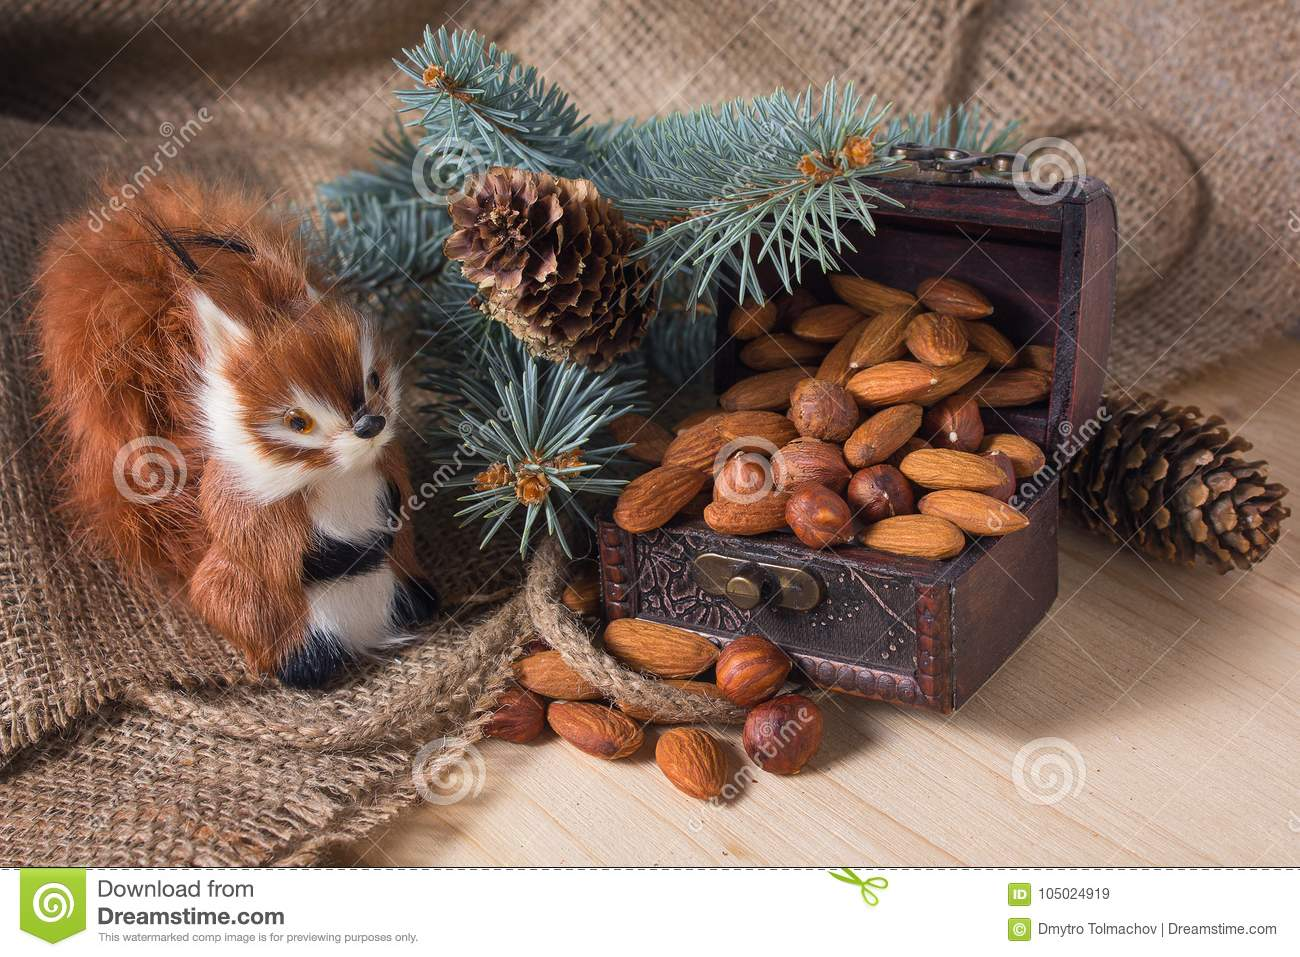 Toy squirrel and chest with nuts under the Christmas tree